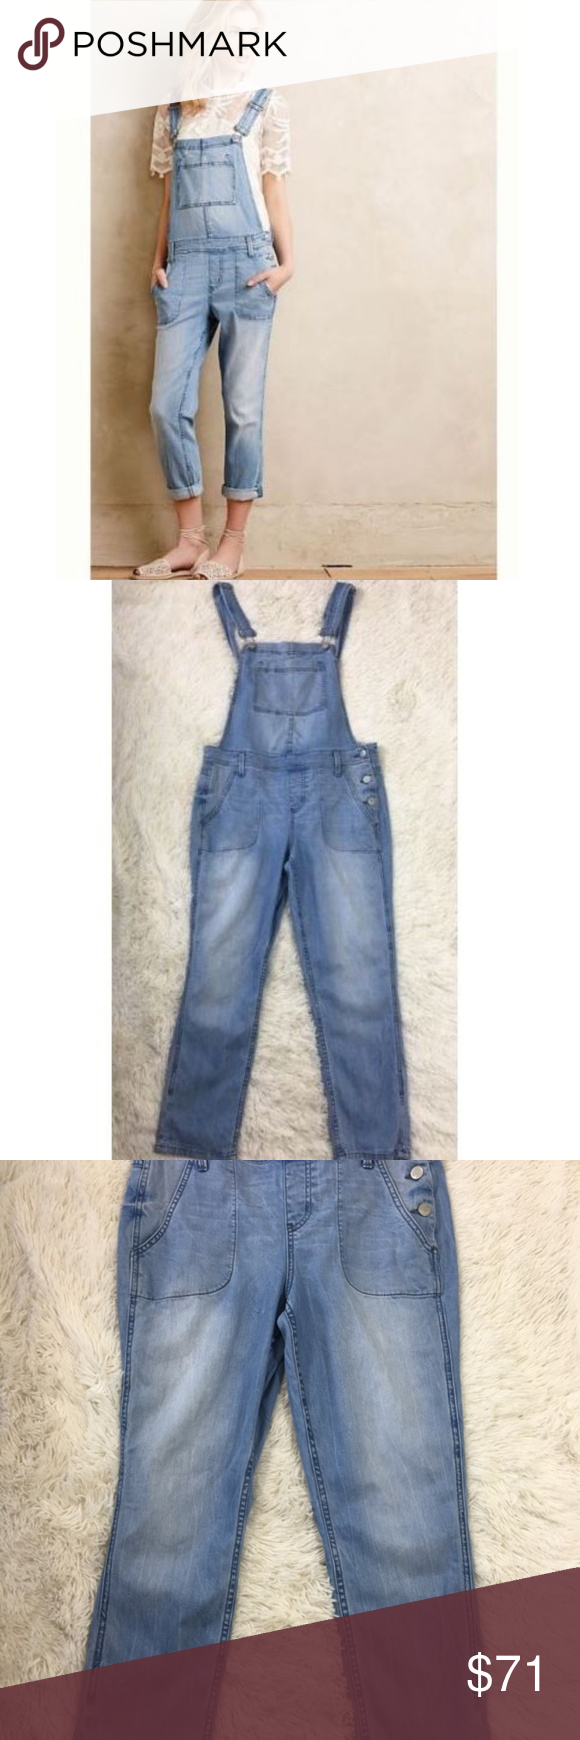 14c27af3a6d Anthropologie Level 99 Lily Jean Denim Overalls M Anthropologie Level 99 Lily  Jean Denim Overalls sz Medium Light Wash M Inseam is 26 inches d267 Level  99 ...